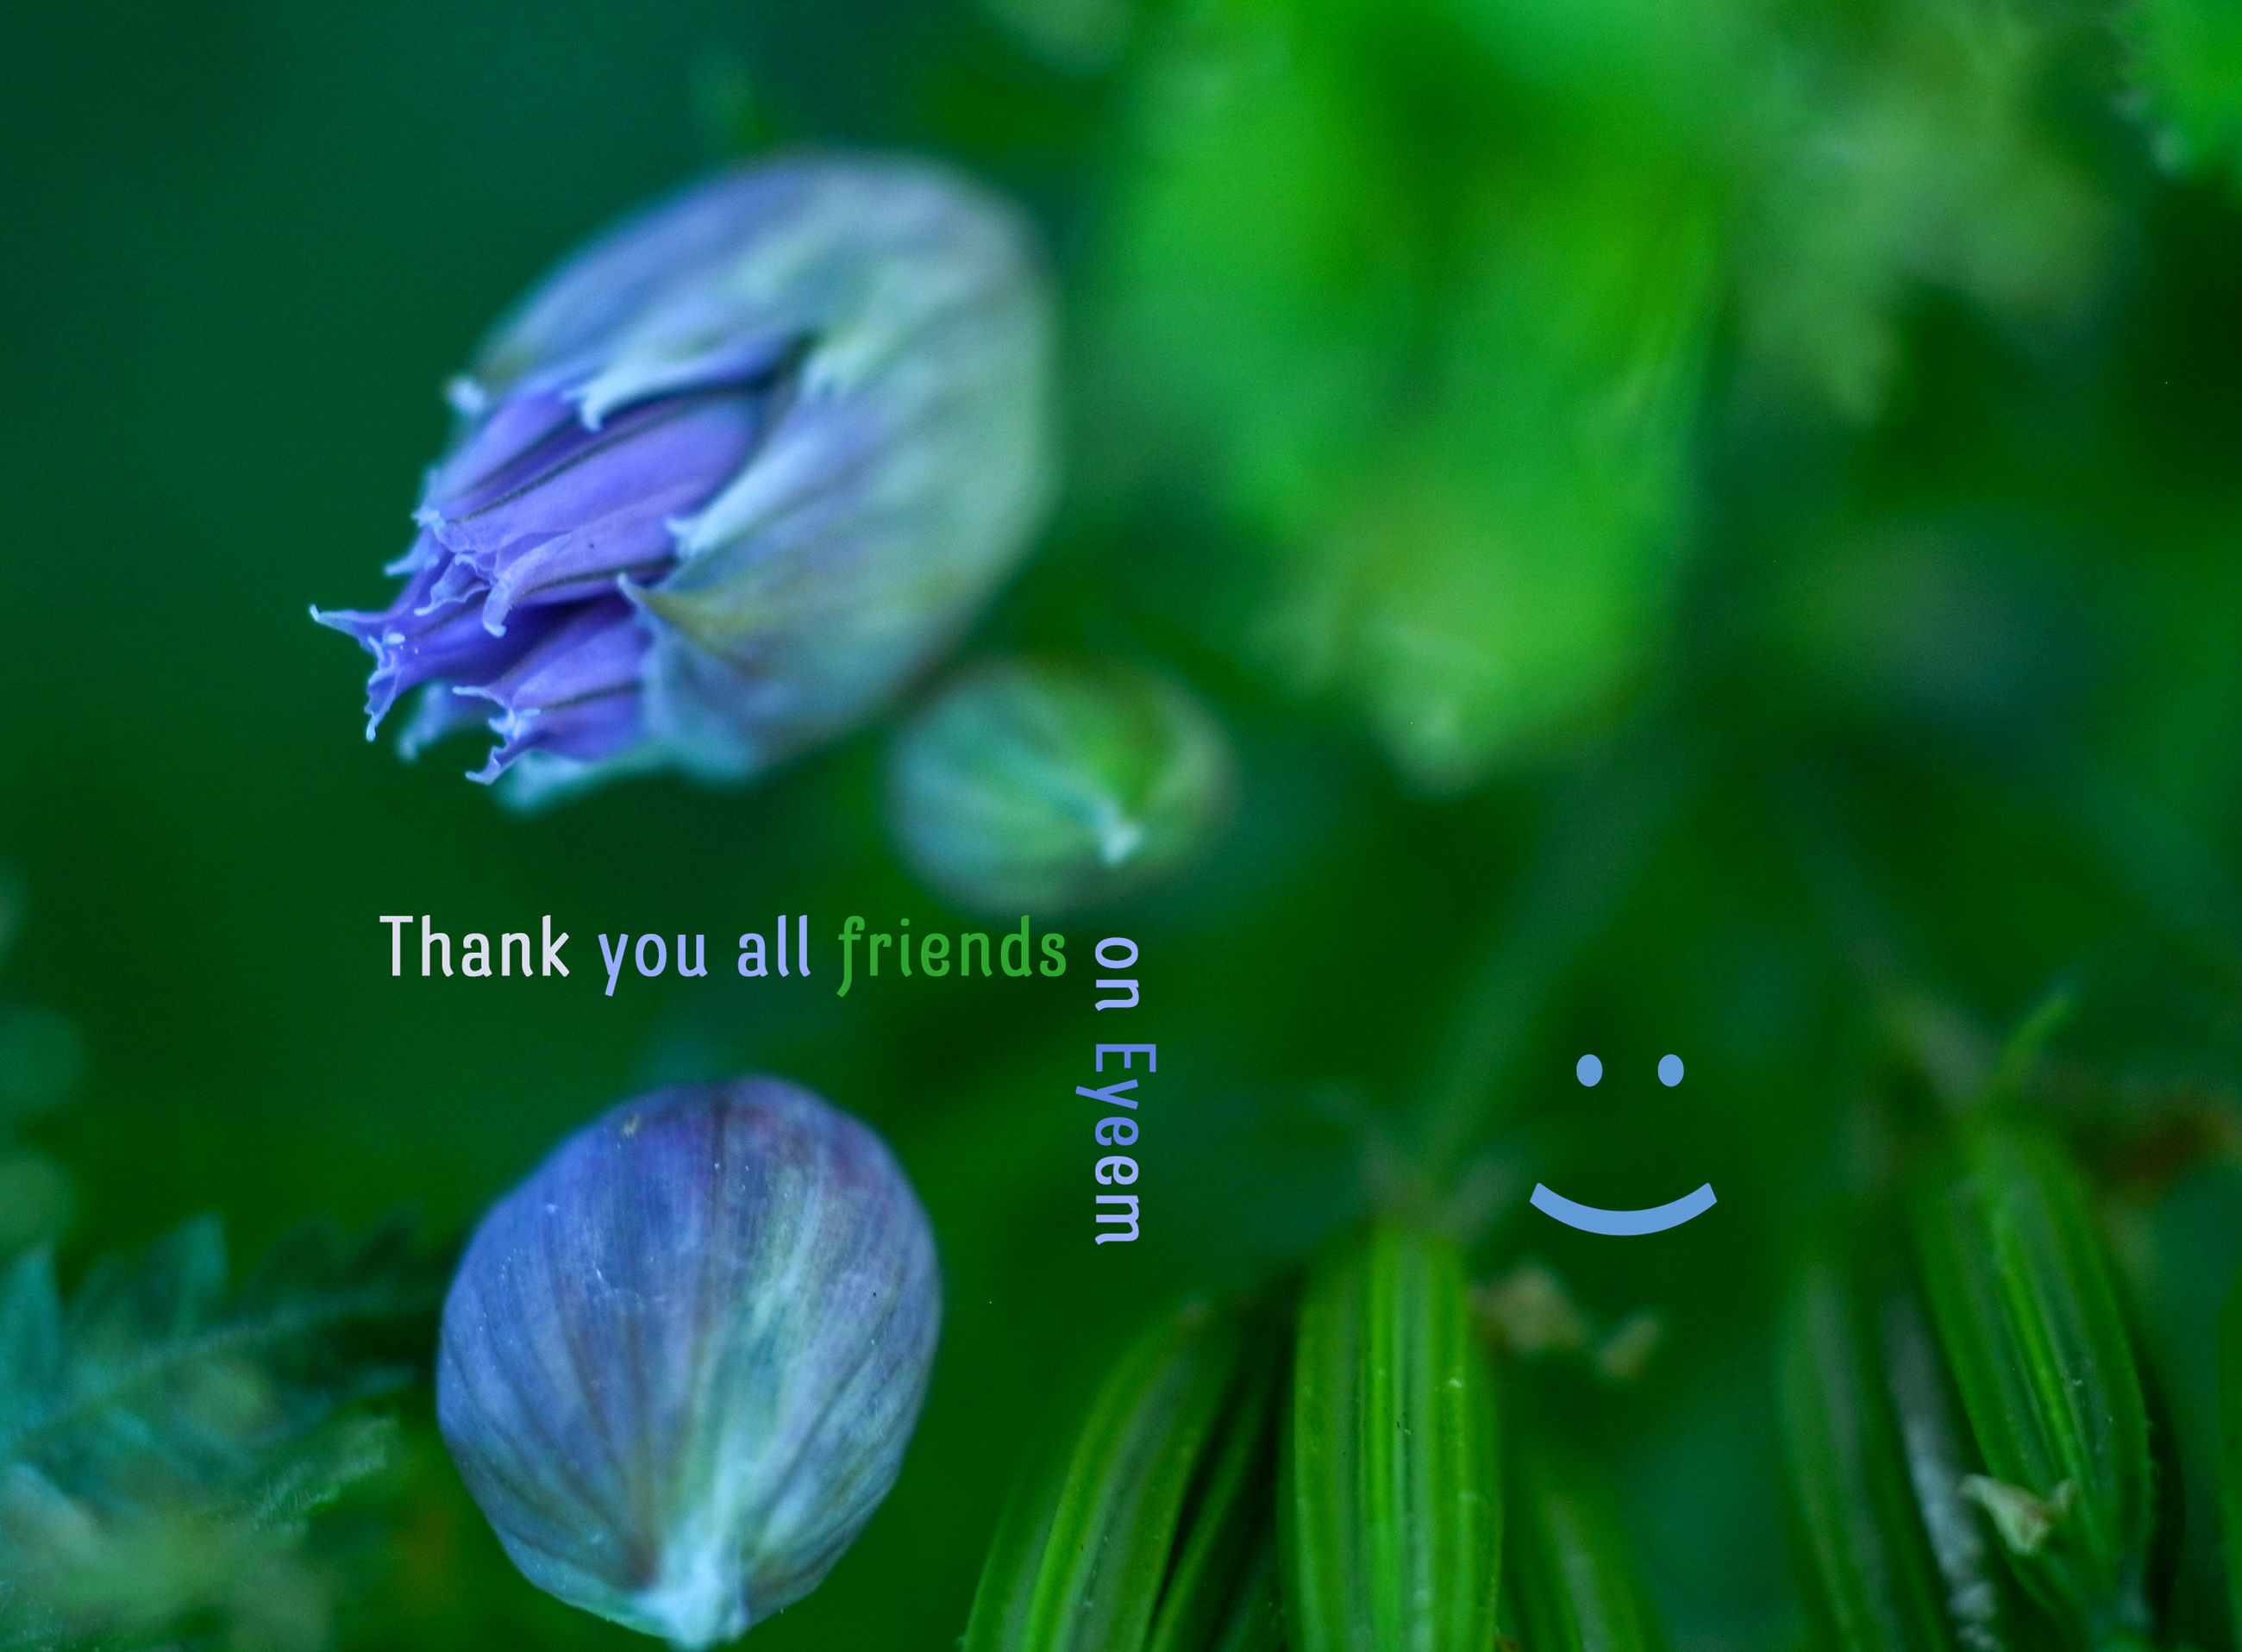 plant, flowering plant, freshness, flower, beauty in nature, growth, fragility, vulnerability, close-up, no people, petal, nature, text, green color, western script, purple, communication, flower head, inflorescence, selective focus